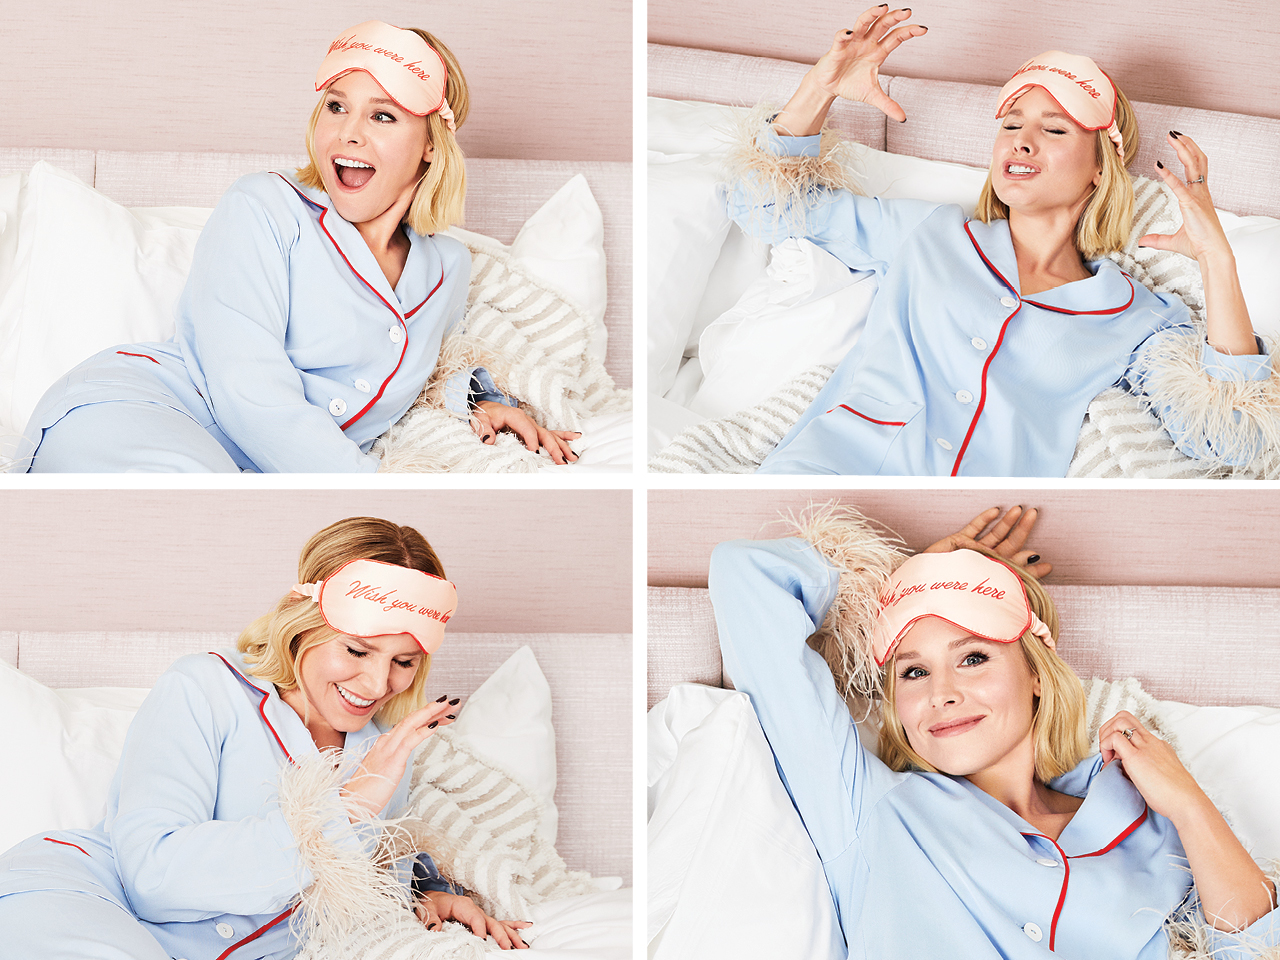 Grid of photos showing Kristen Bell lounging on a bed with a sleep mask on here head that reads Wish you were here